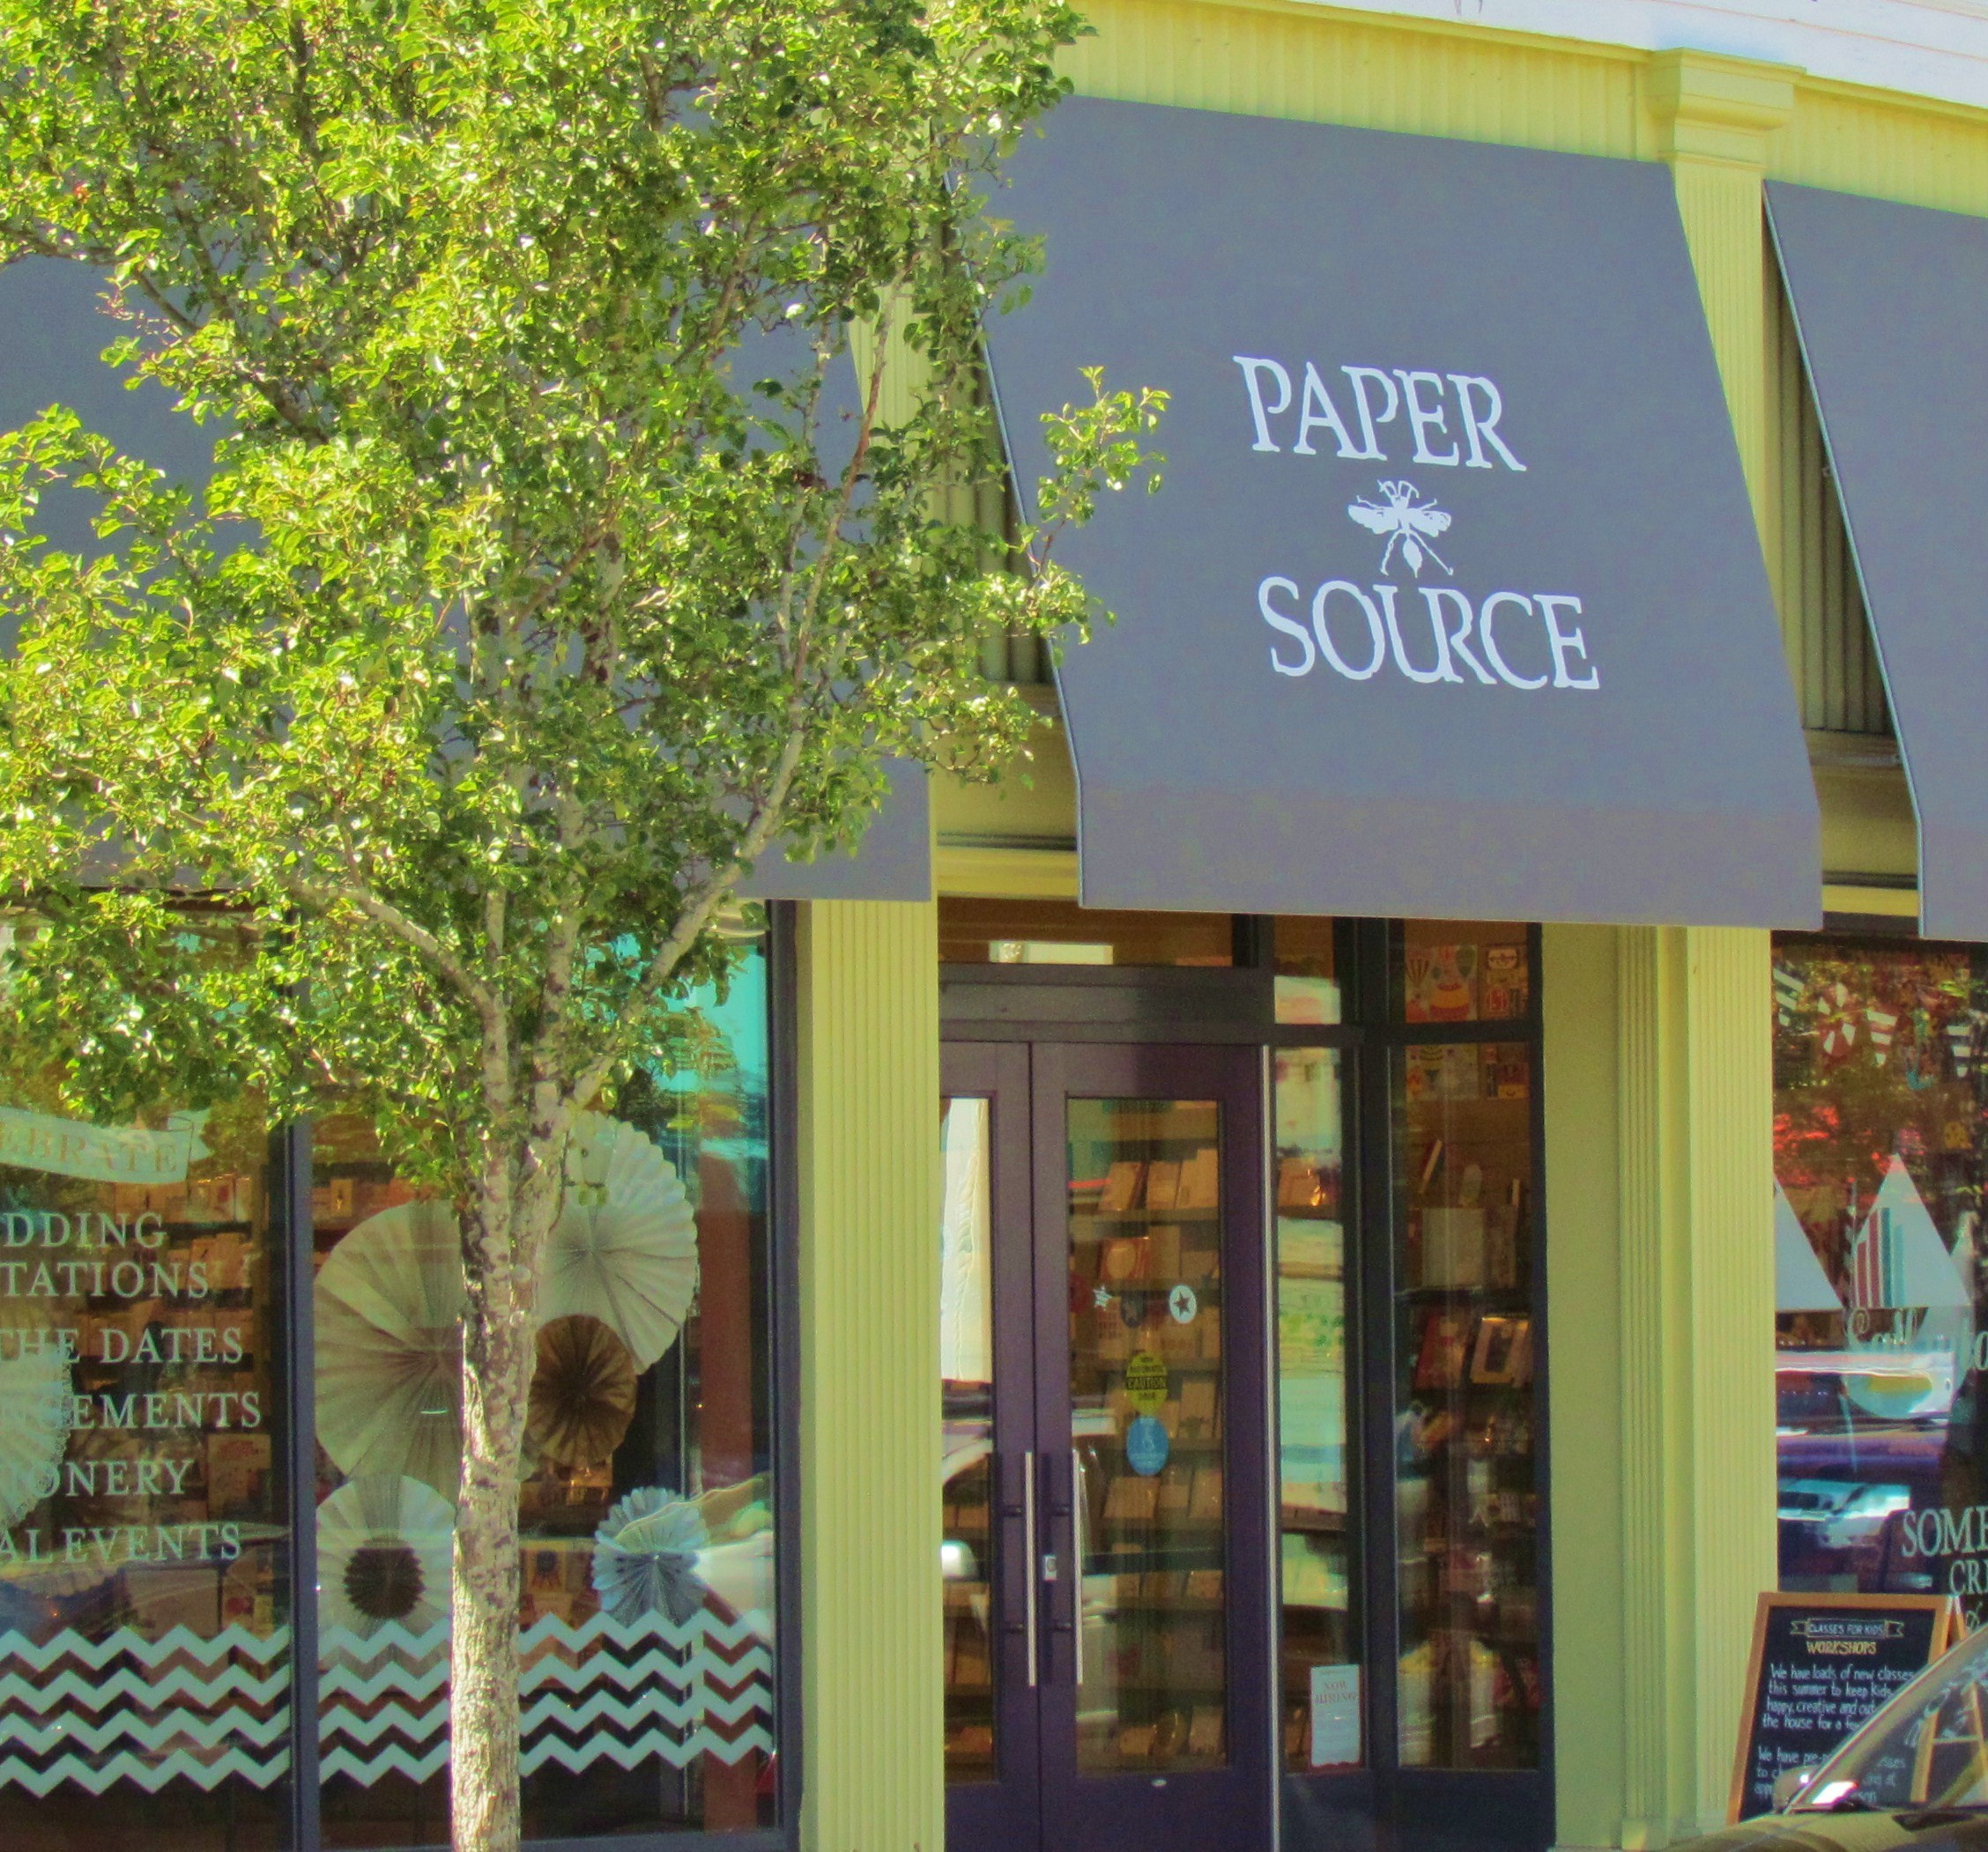 paper source wellesley 4 paper source jobs in wellesley, ma search job openings, see if they fit - company salaries, reviews, and more posted by paper source employees.